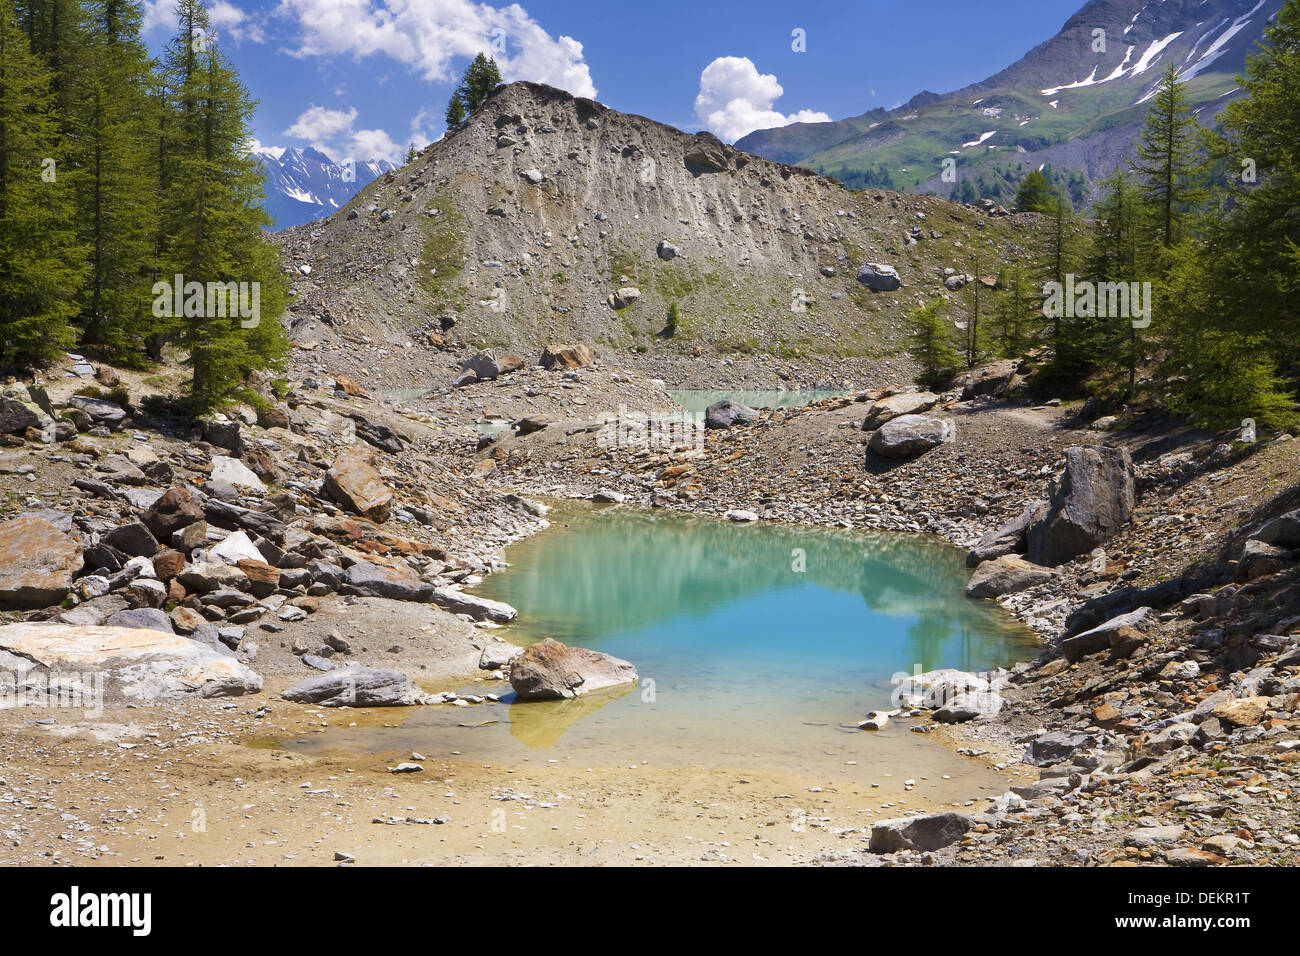 Trees, lake and glacial moraines in Glacier Miage in the massif of Mont Blanc or Monte Bianco in the Italian Alps. Italy, - Stock Image